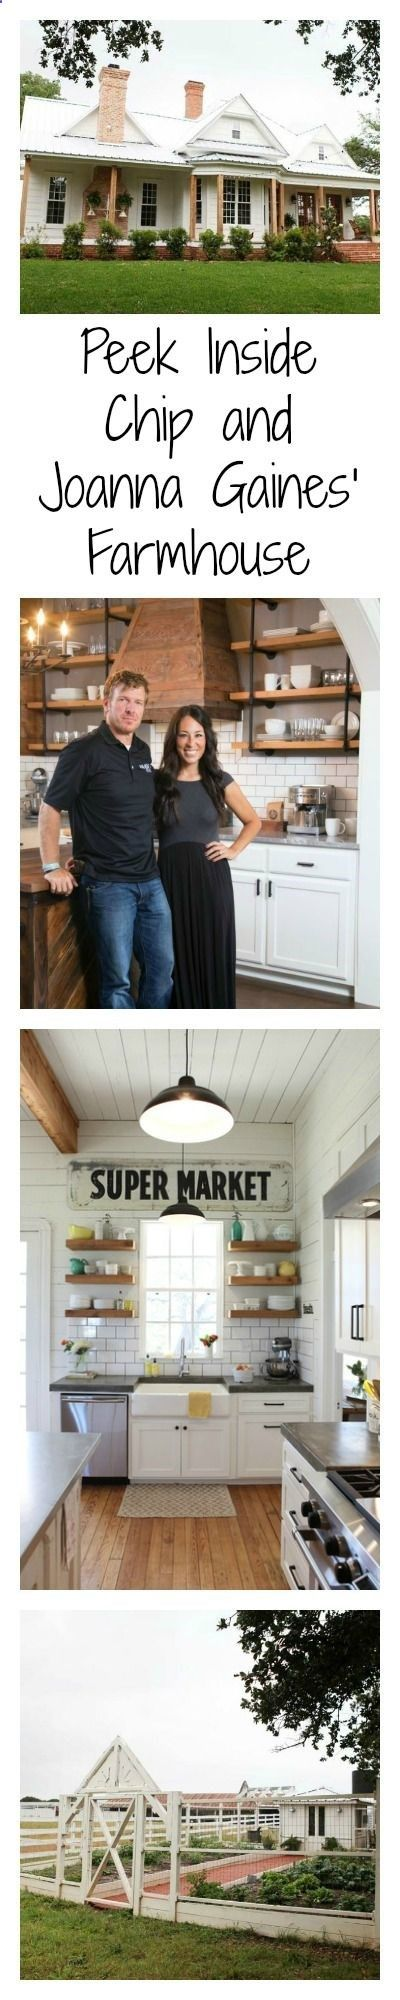 See Chip and Joanna Gaines' farmhouse like never before! This is where the starts of HGTV's Fixer Upper reside.